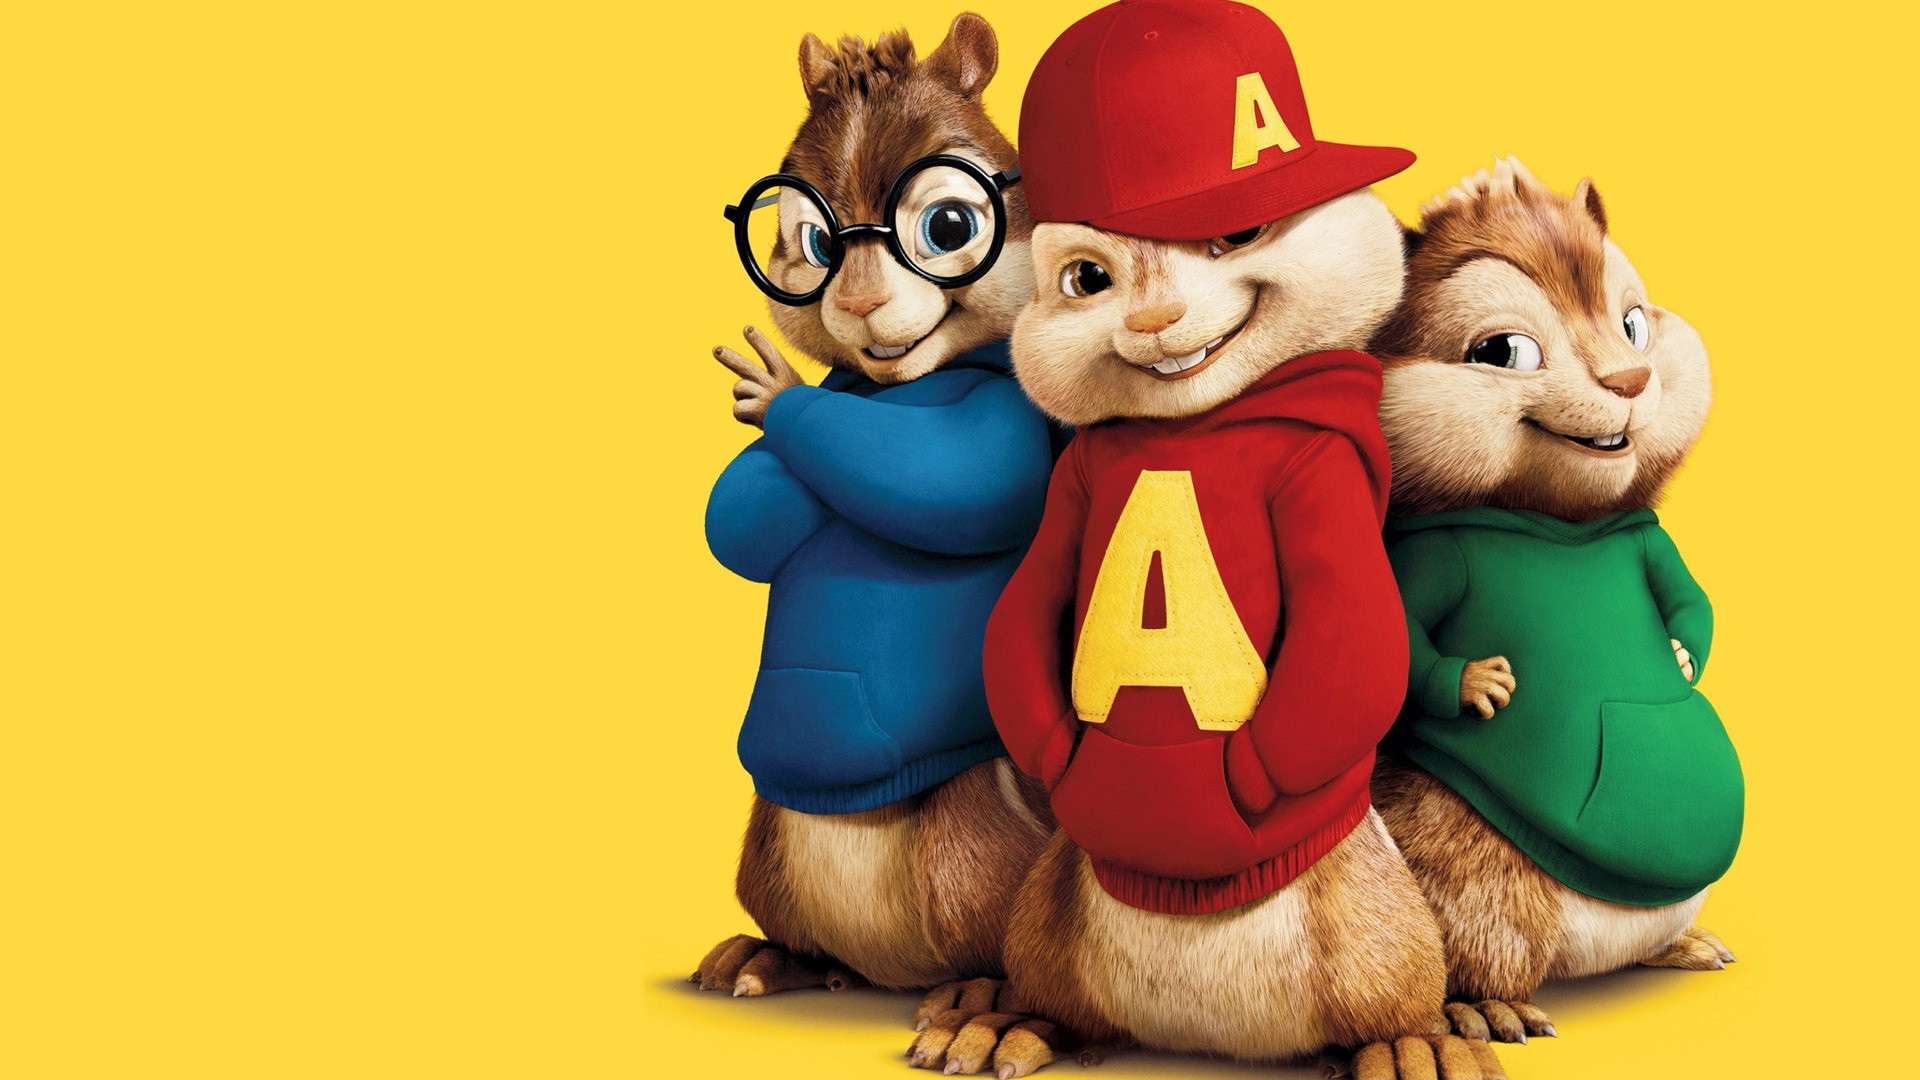 Alvin And The Chipmunks 1378.9 Kb